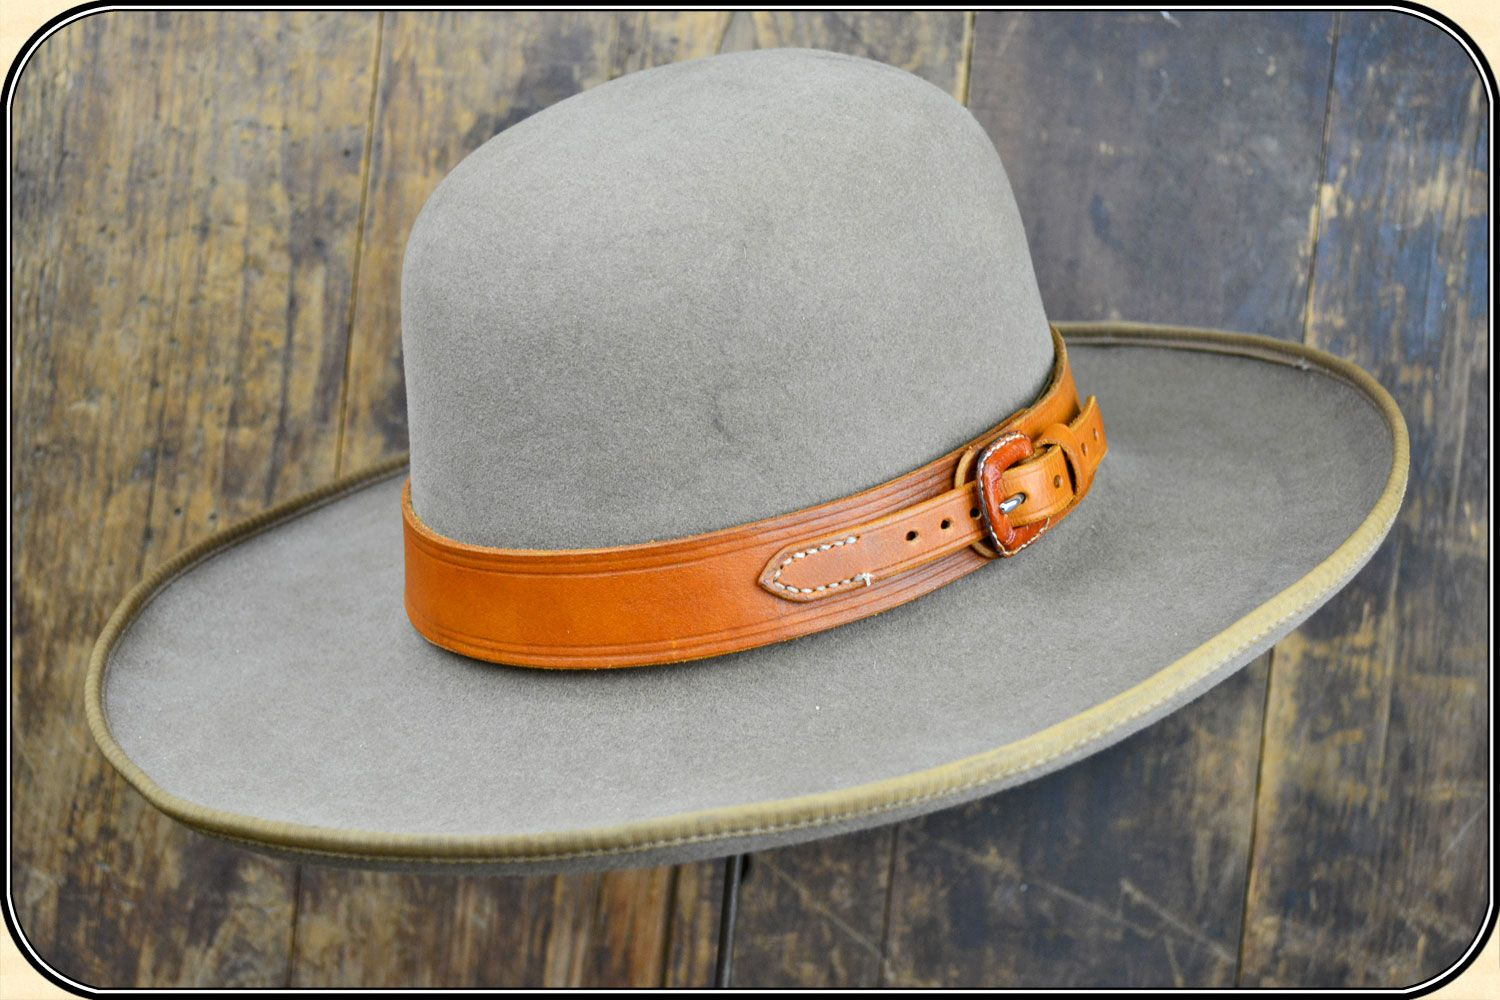 Jb Leather Hatband Leather Hat Bands Hats For Men Leather Hats